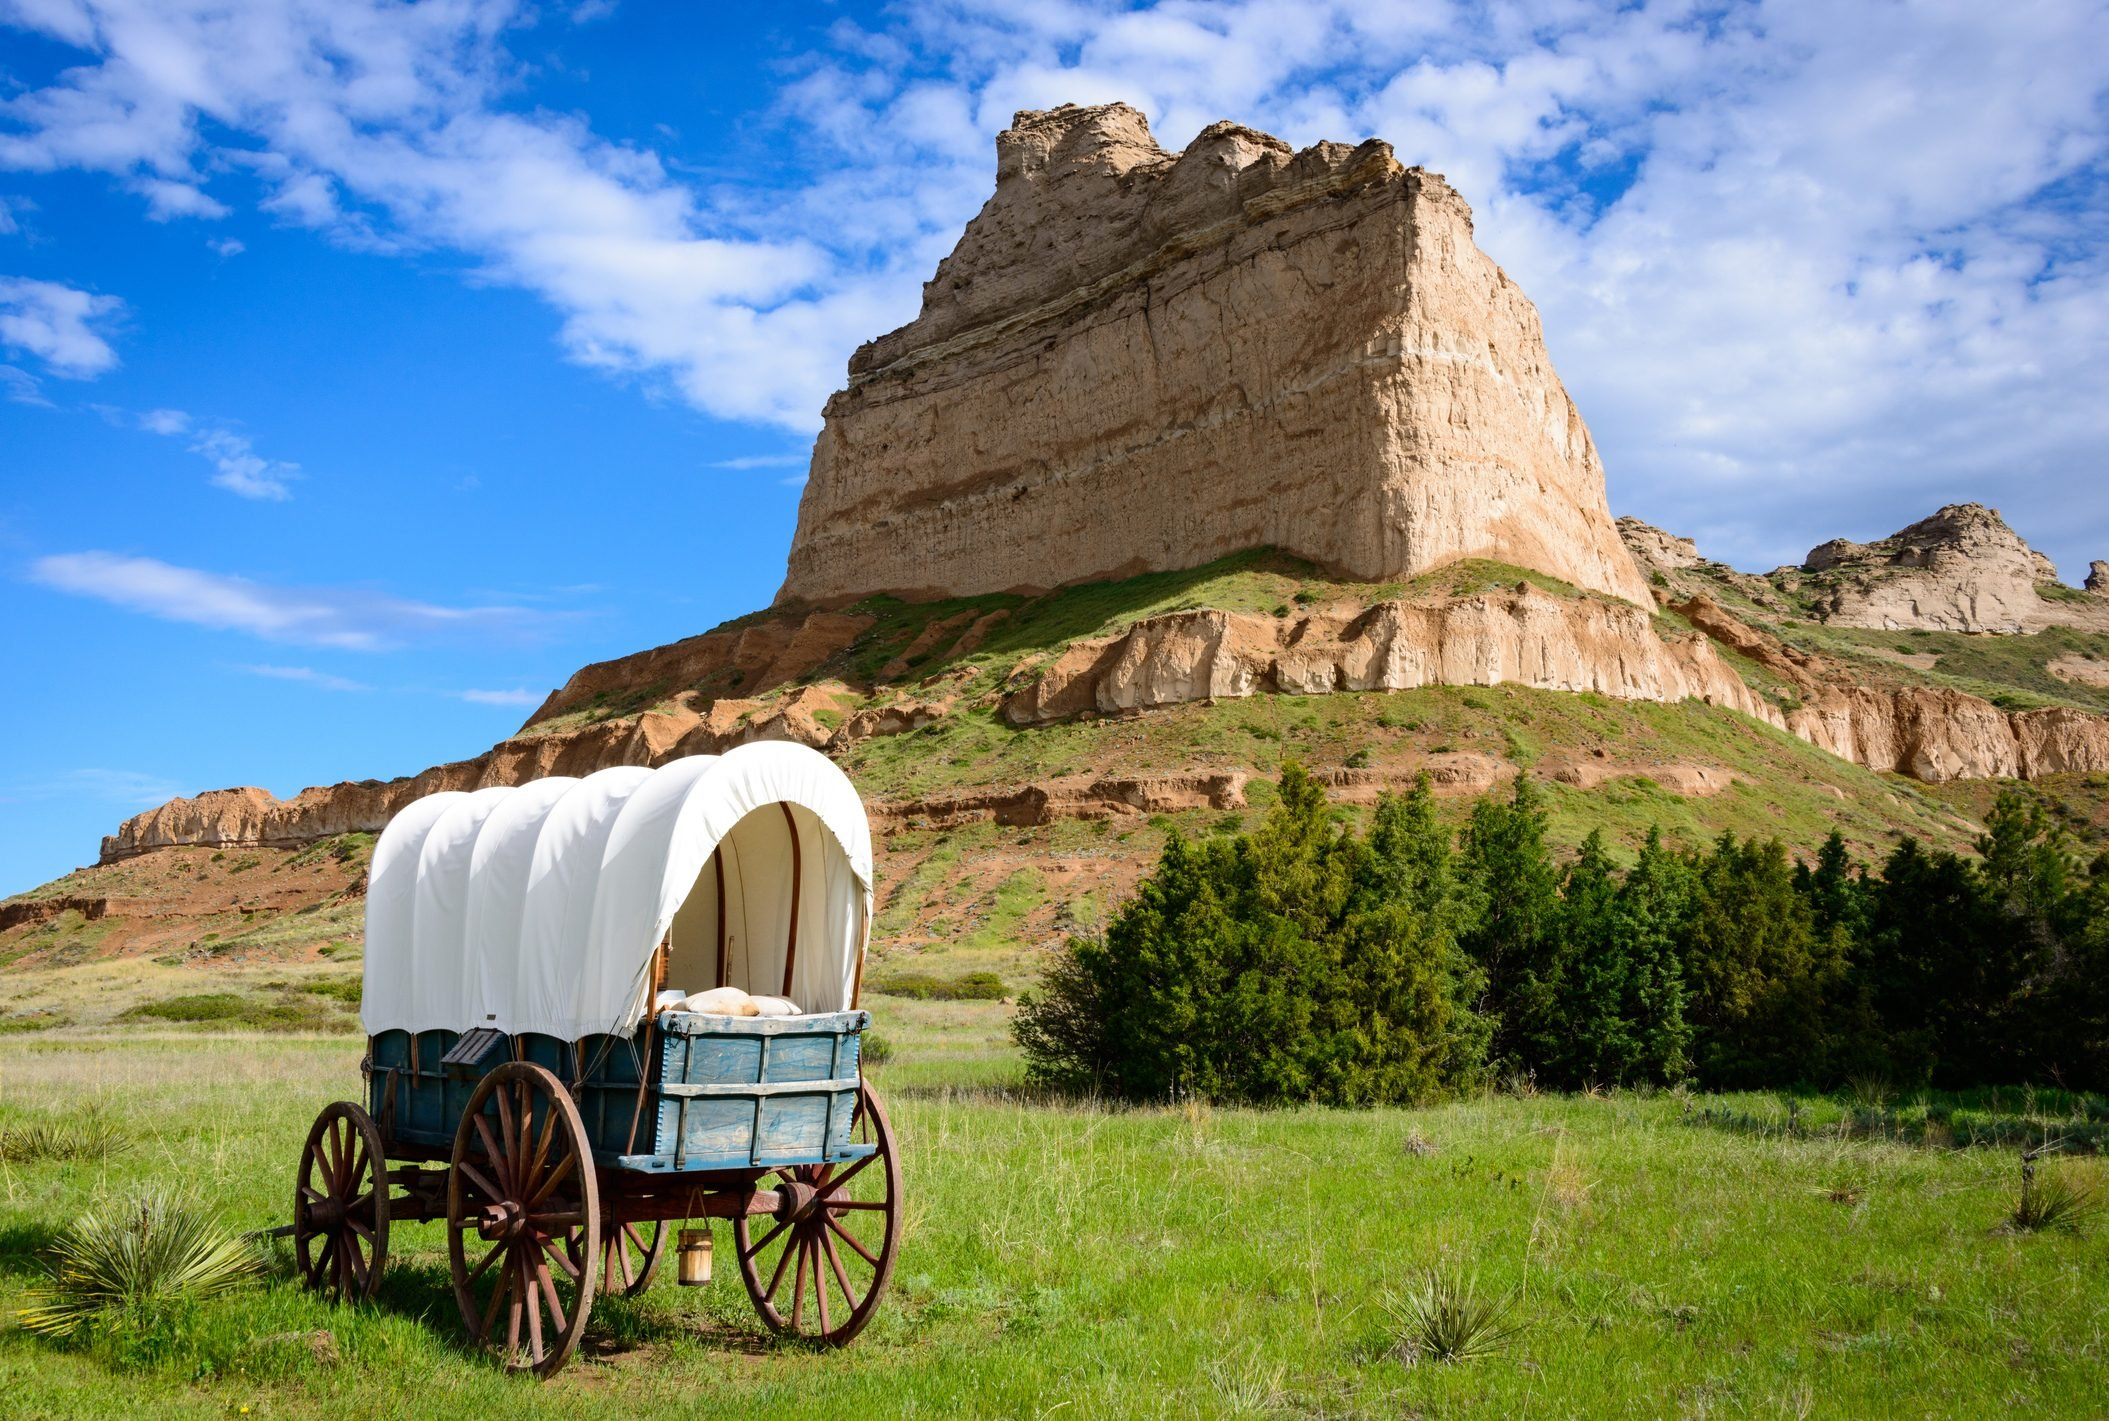 covered wagon in a field at Scotts Bluff National Monument in Nebraska along the Oregon Trail